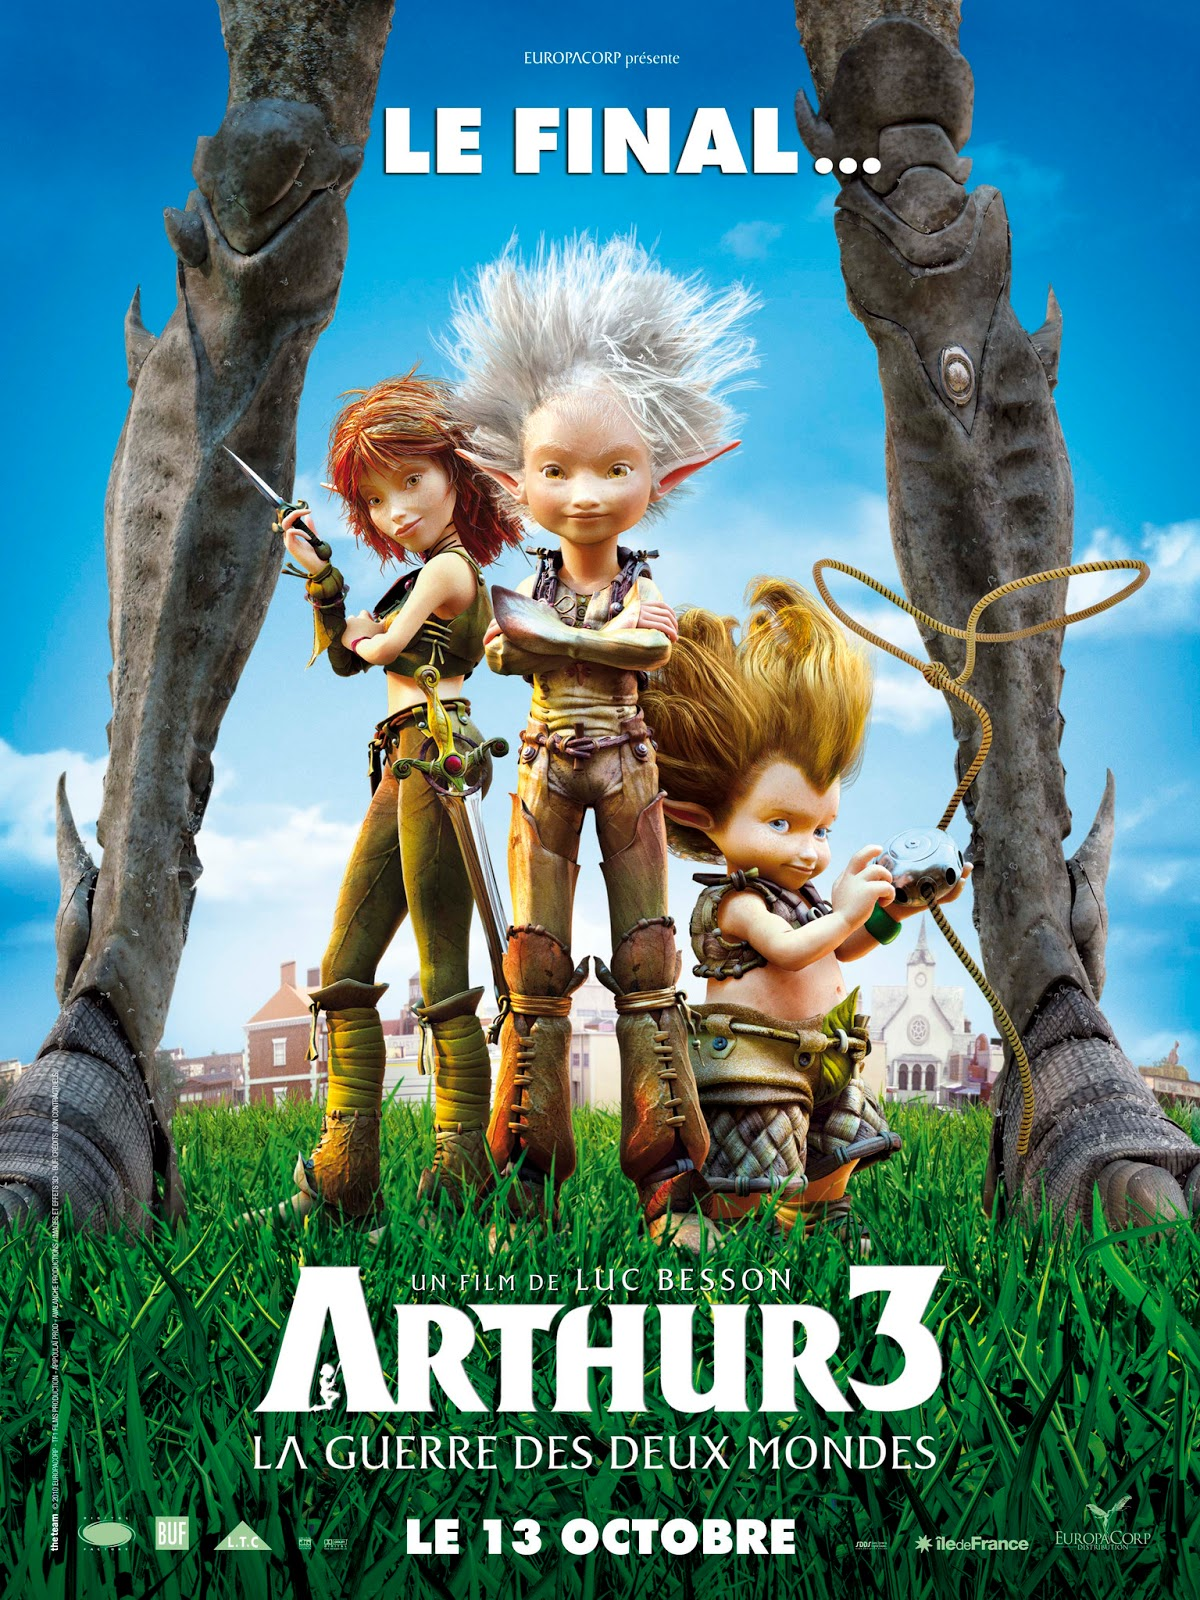 Arthur 3 The War of the Two Worlds (2010) ταινιες online seires xrysoi greek subs